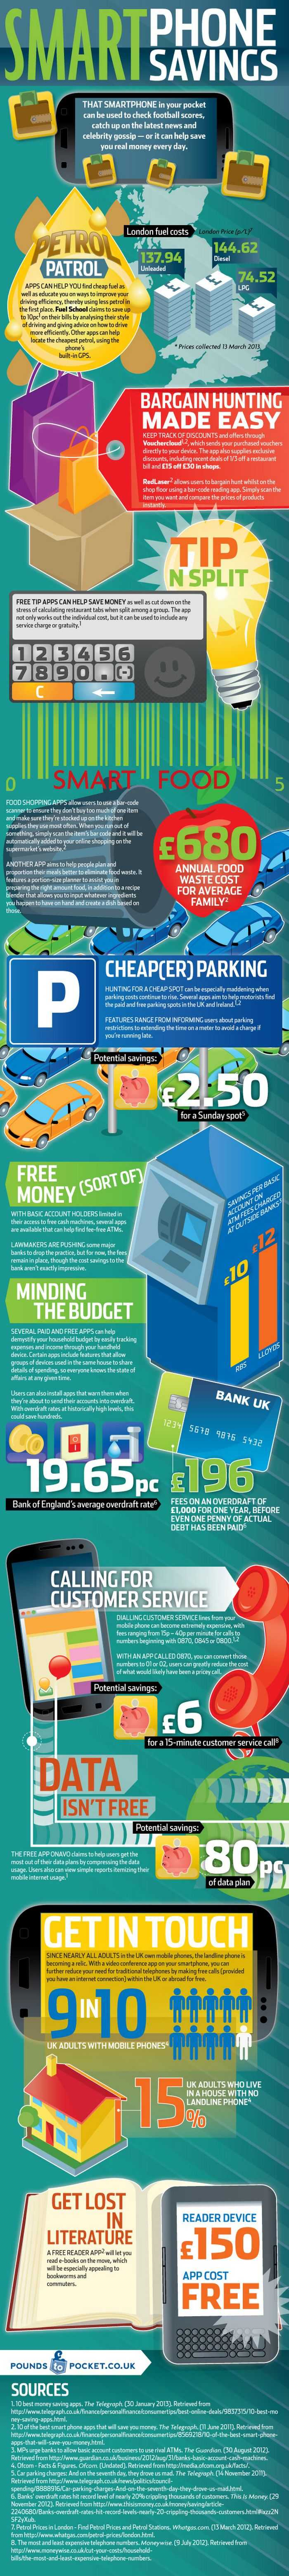 Infographic: Be Smart and Save Money with your Smartphone